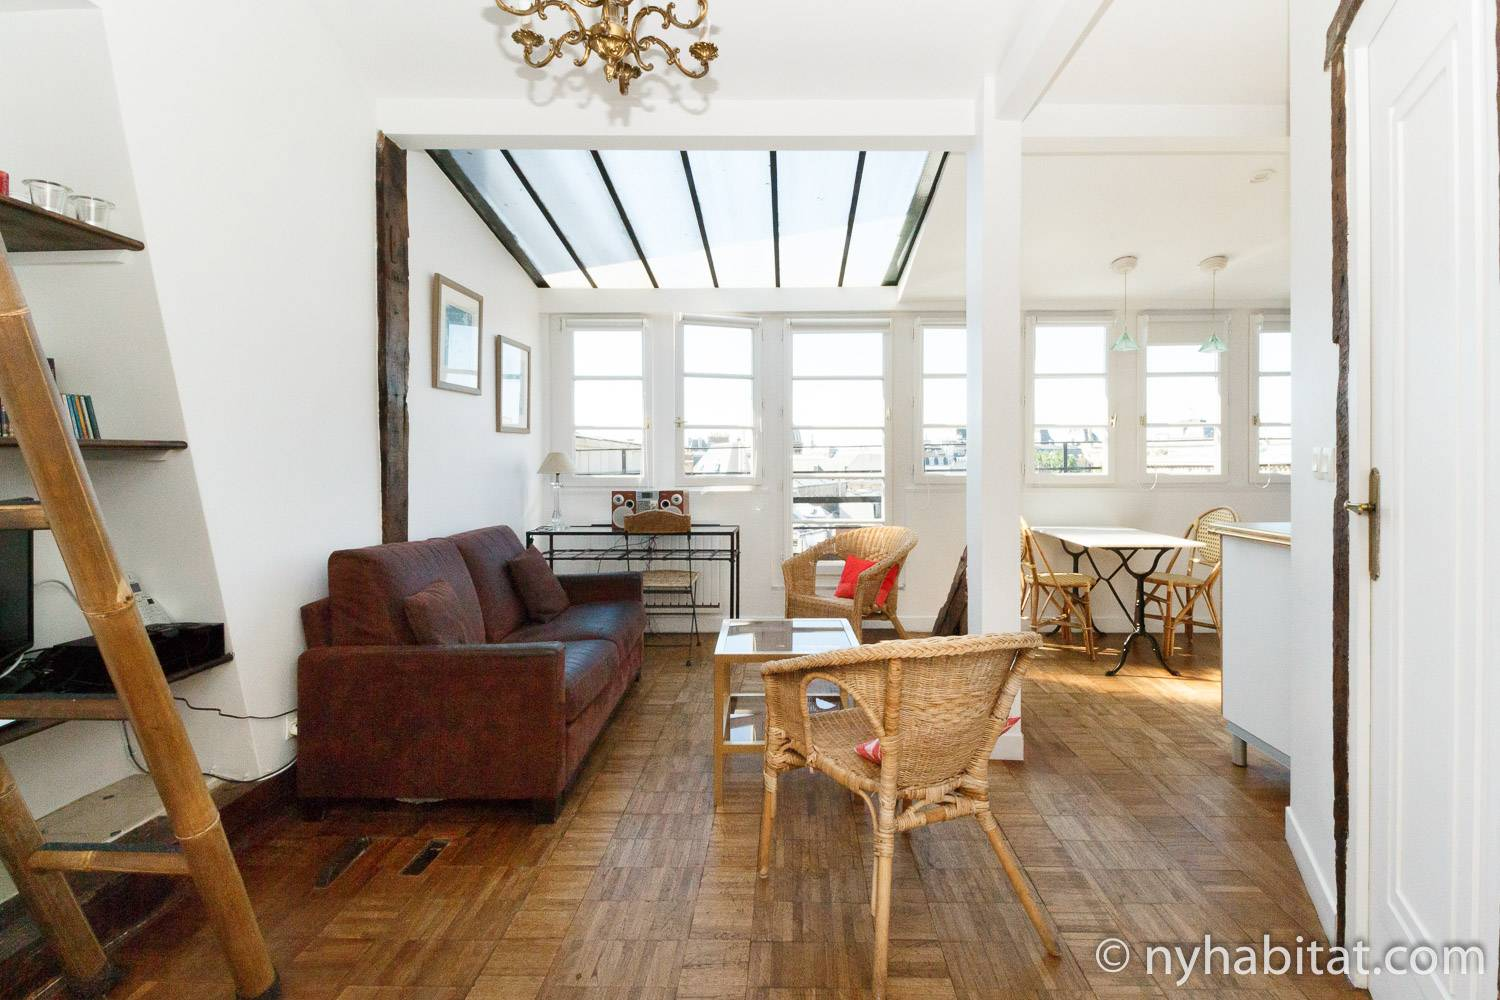 Image of the living room of furnished apartment PA-2473 in Saint-Germain des Prés showing a door opening onto the balcony in the background, seven other windows and a skylight.